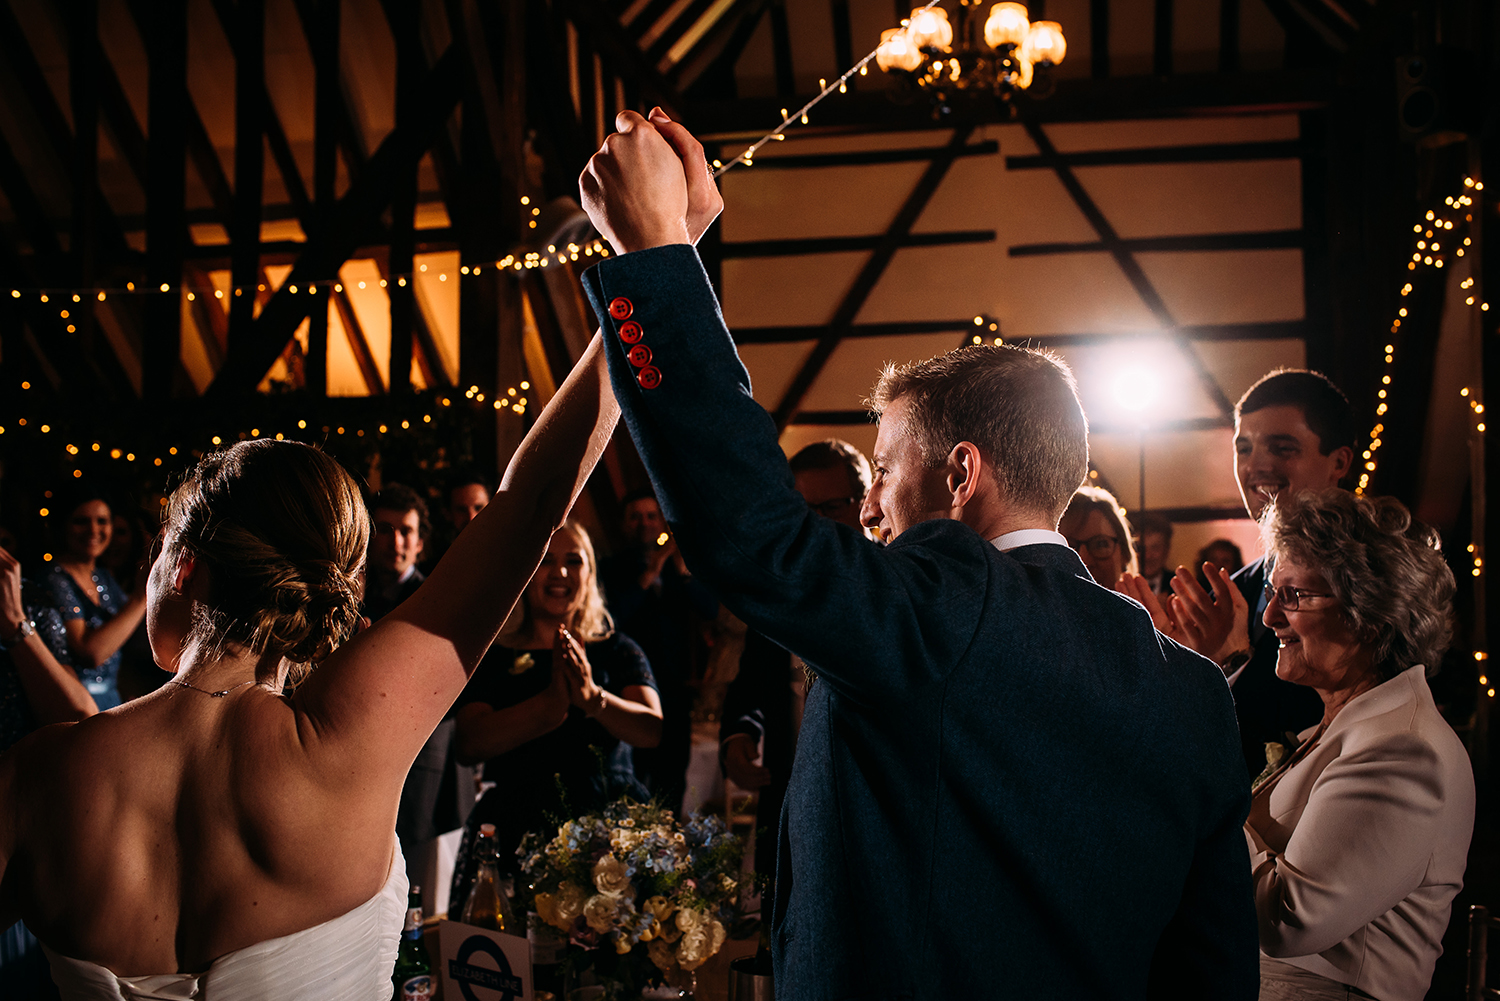 bride and groom lift their holding hands in the air as they arrive in the room for their reception